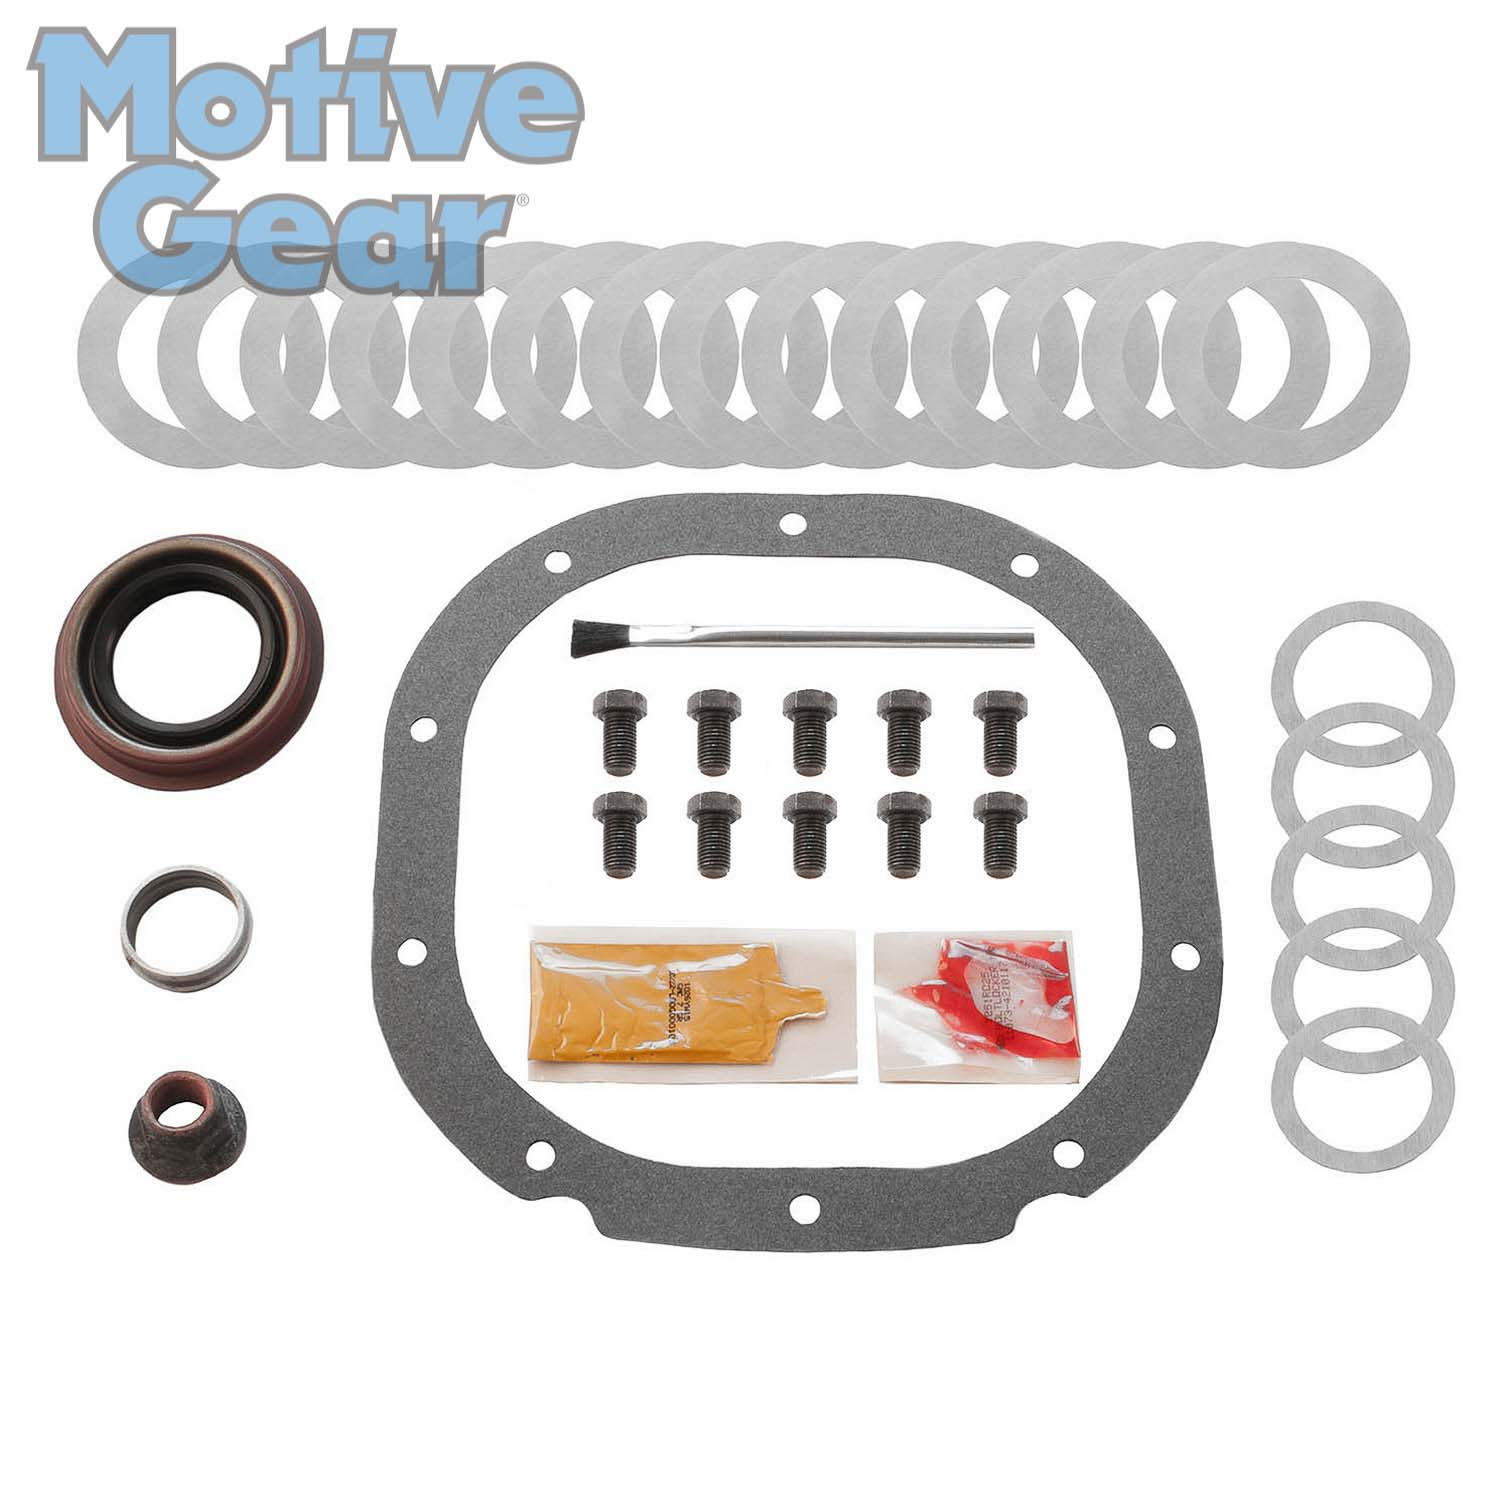 Ford 8.8 inch 10 BoltMotive Gear Master Install Kit